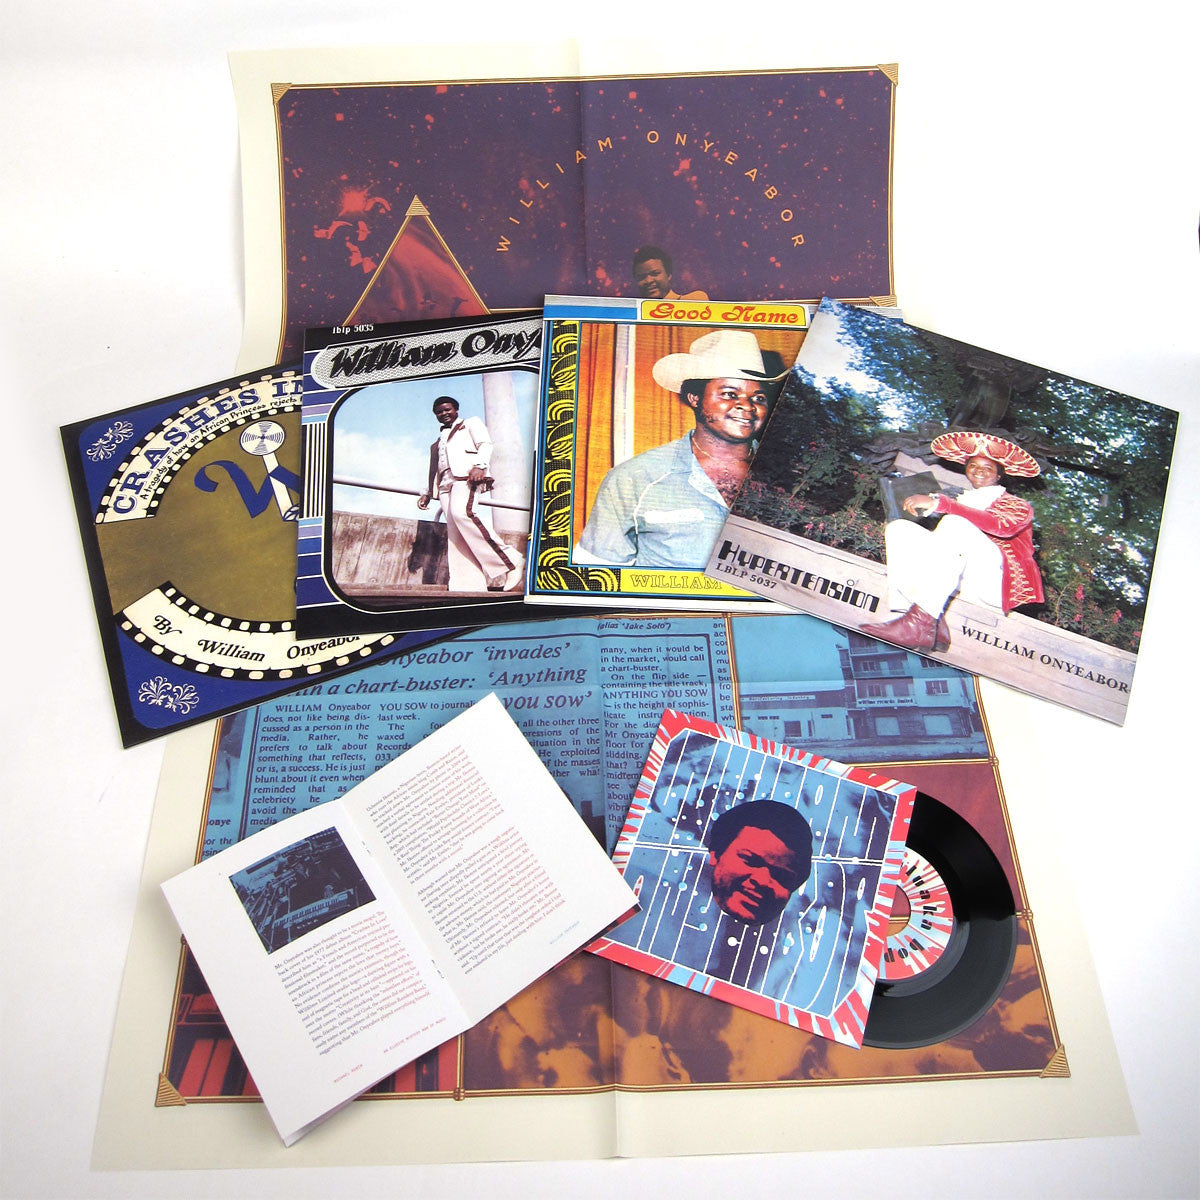 William Onyeabor: Volume 2 Vinyl LP Boxset detail